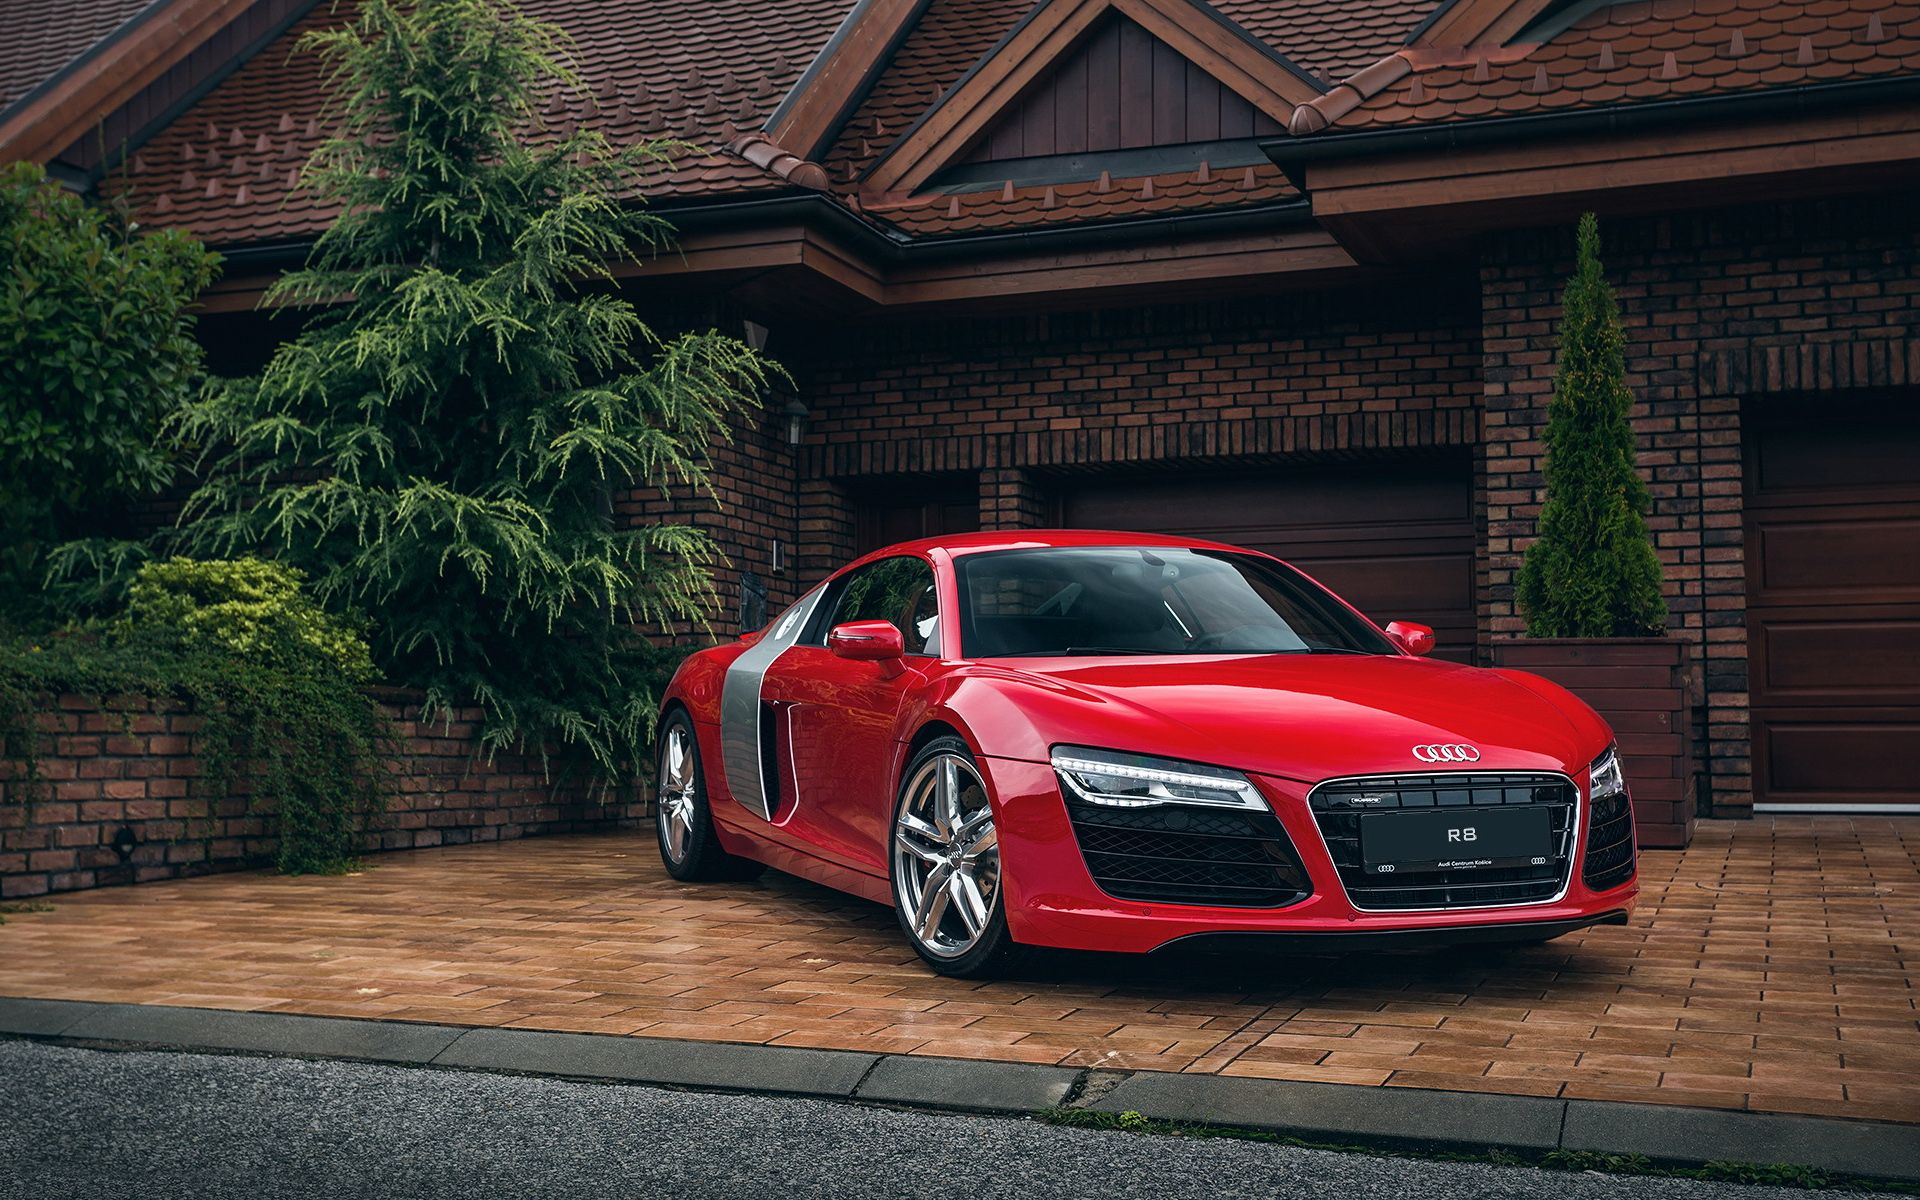 Red Audi R8 Wallpapers Top Free Red Audi R8 Backgrounds Wallpaperaccess